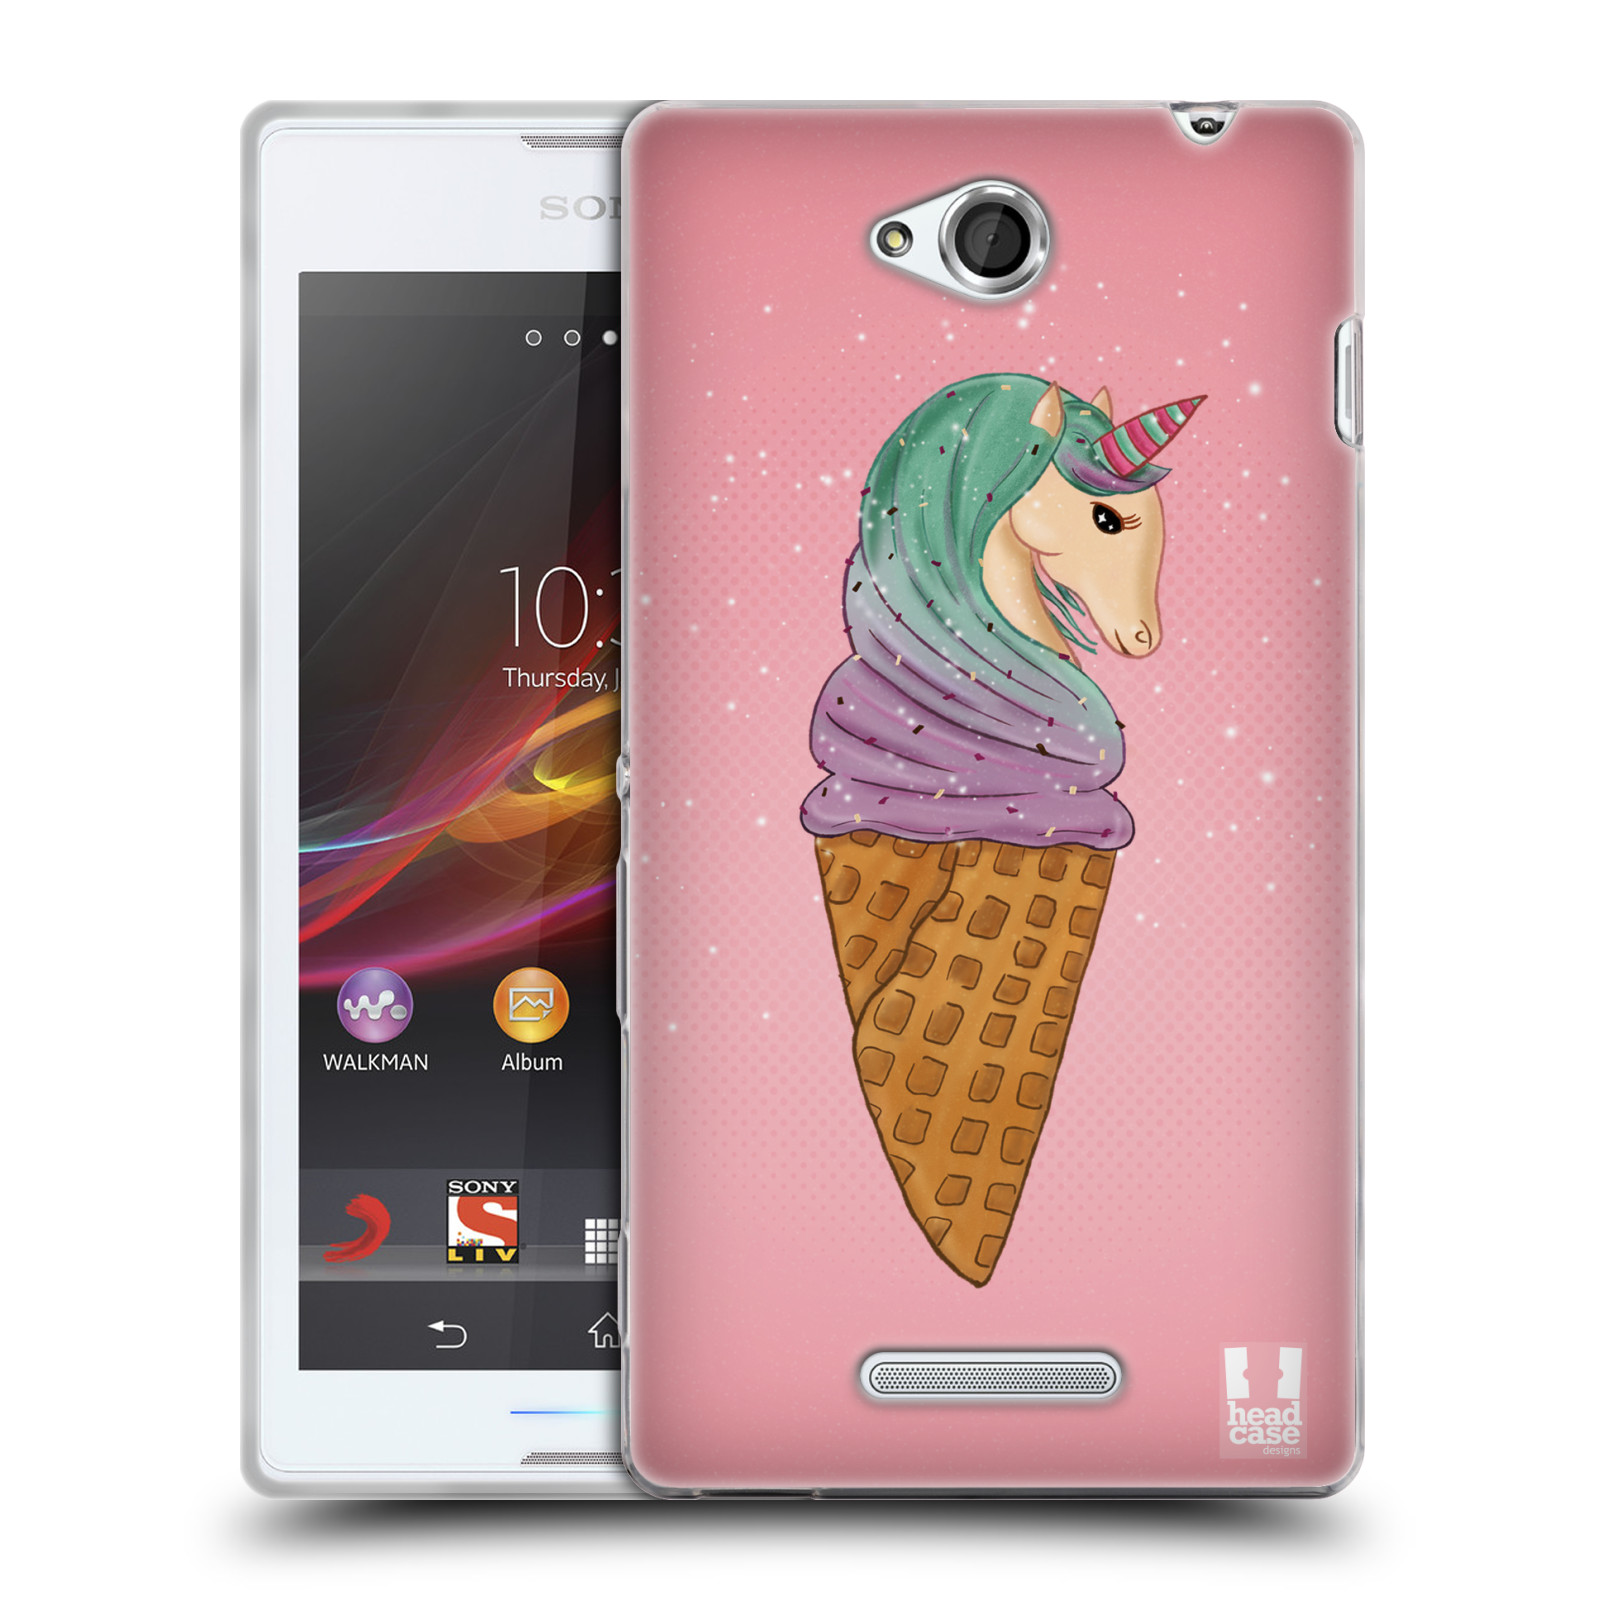 HEAD-CASE-DESIGNS-UNICONES-SOFT-GEL-CASE-FOR-SONY-PHONES-3